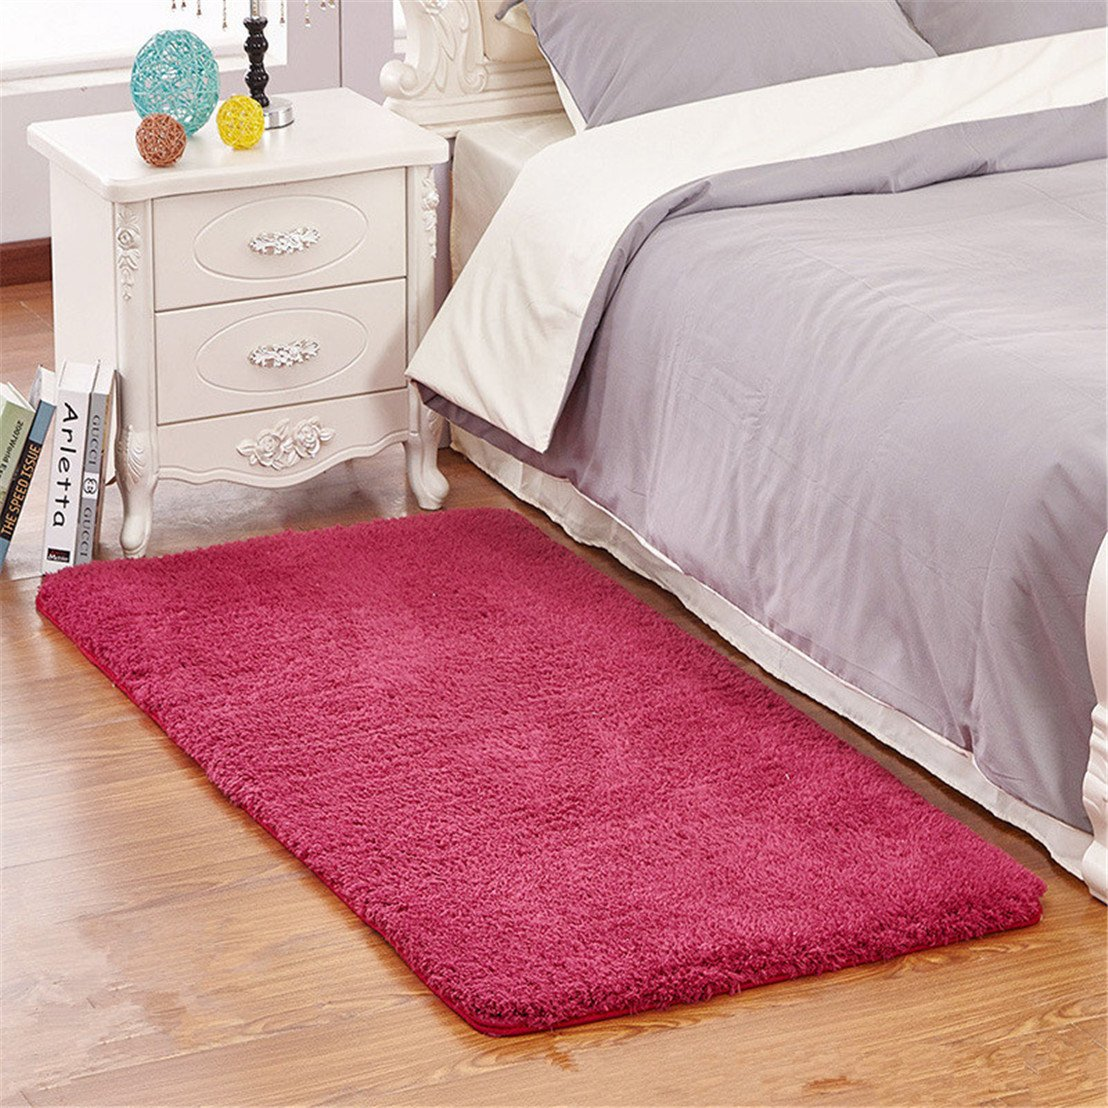 Mynse 23.6x47.2 Modern Simplicity Super Soft Plush Area Rugs for Bedroom Living Room Bedside Hotel Mat (Coffee)